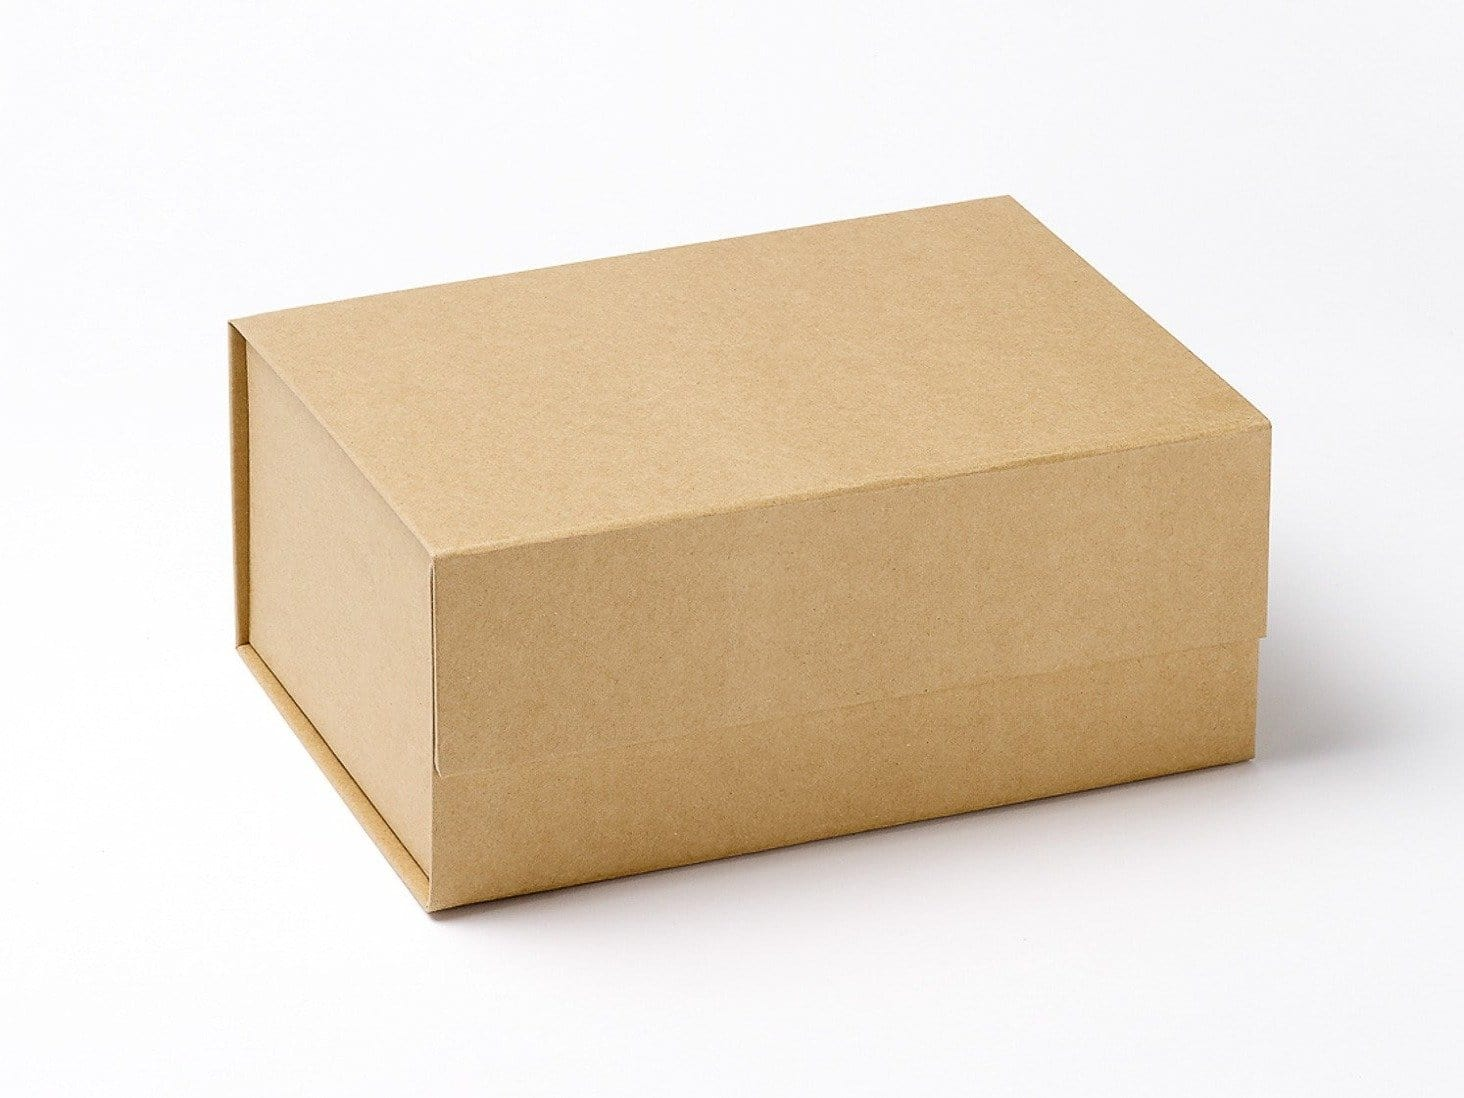 Foldabox UK Natural Kraft Brown Luxury A5 Deep Gift Box with Magnetic Closure